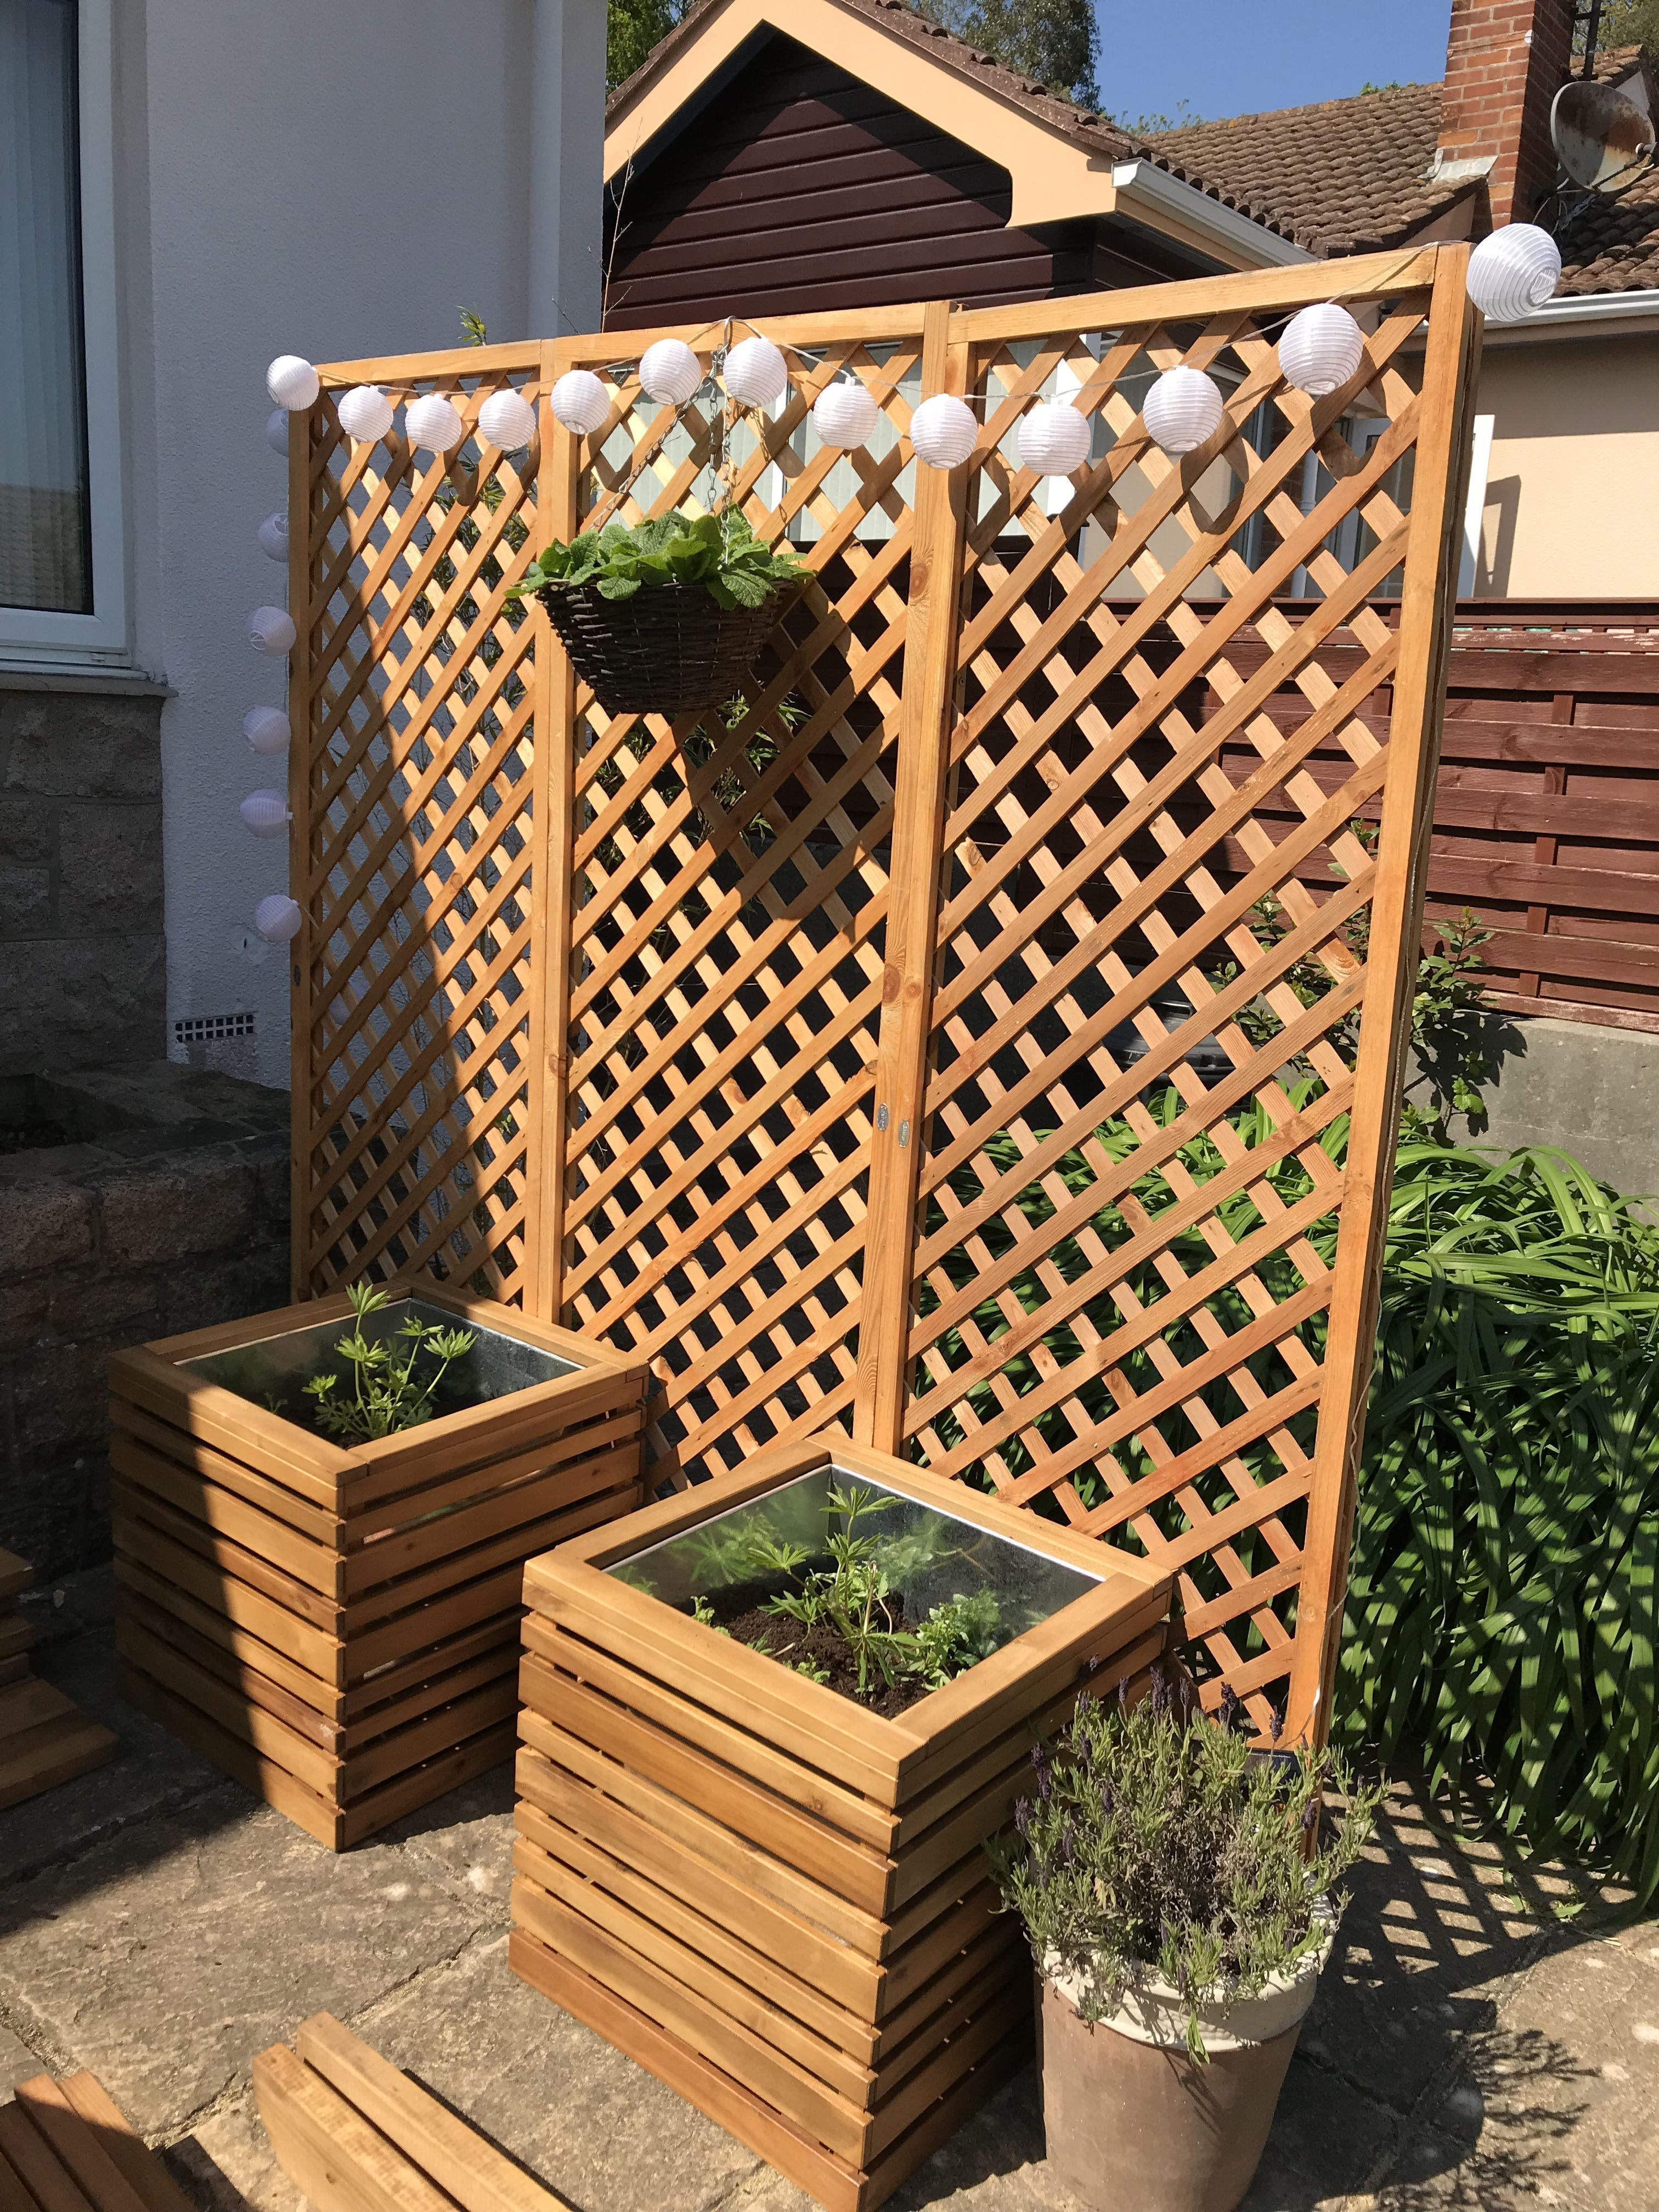 Privacy Screen Made With Trellis And Wooden Planters